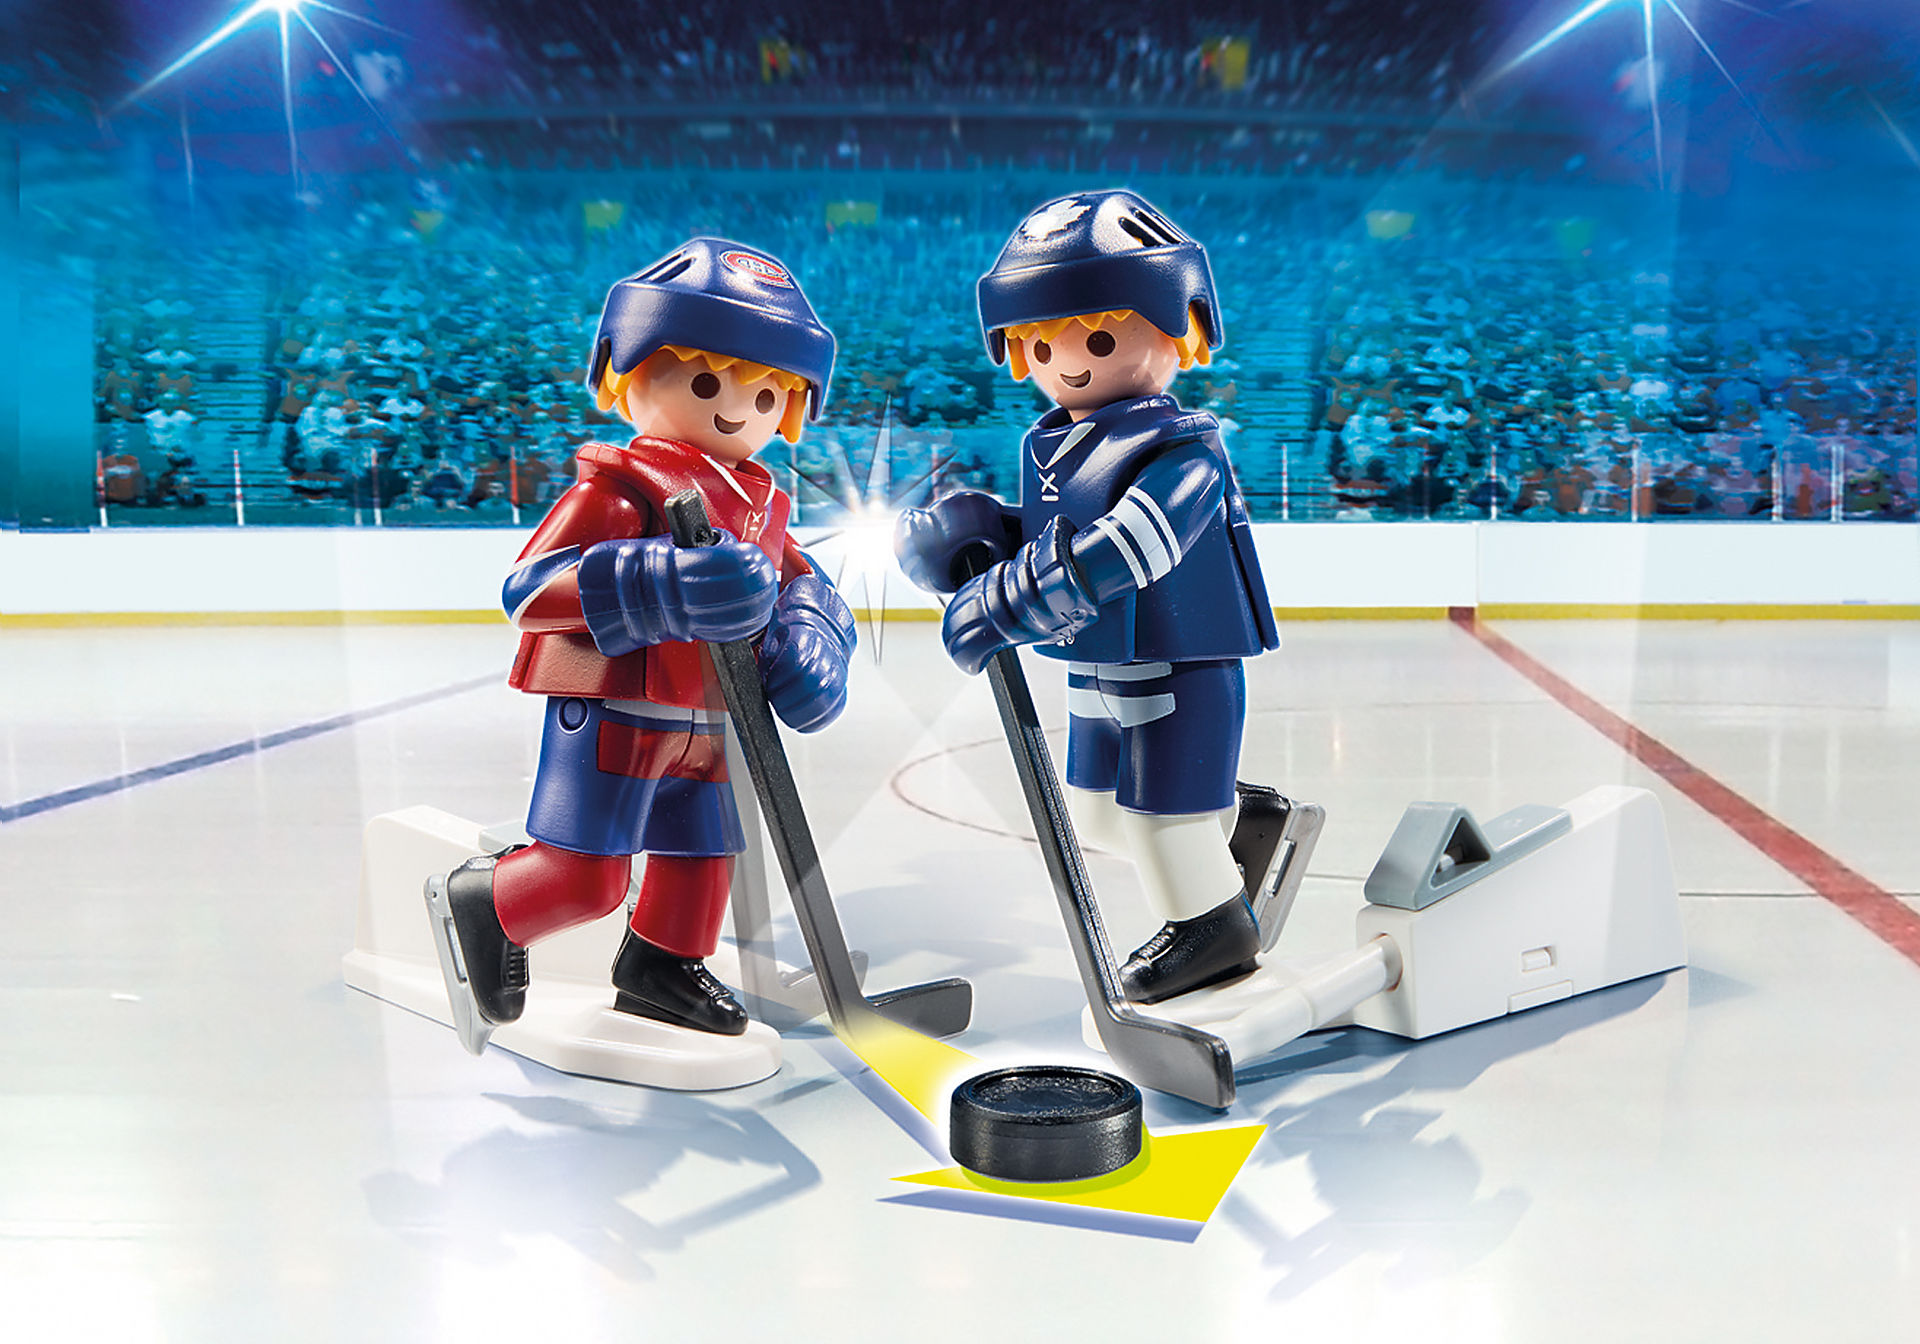 9013 NHL™ Blister Montreal Canadiens™ vs Toronto Maple Leafs™ zoom image1